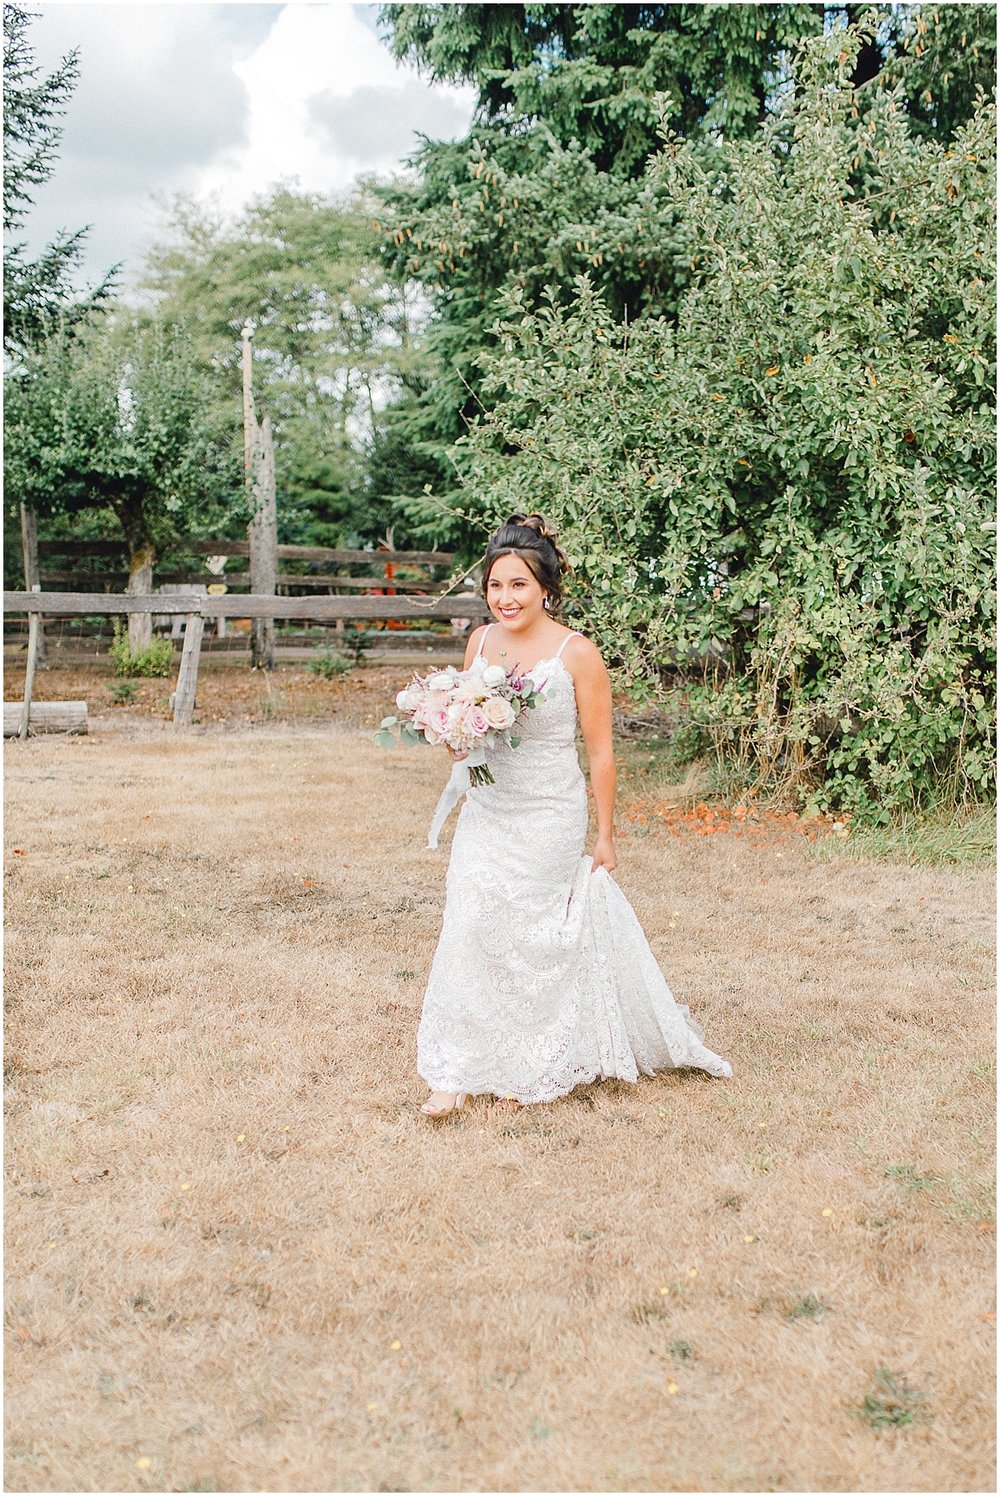 Beautiful mauve wedding in the Pacific Northwest, Emma Rose Company Light and Airy Wedding Photographer Seattle, Washington, Kindred Presets, Wedding Design Details Purple and Blush_0035.jpg